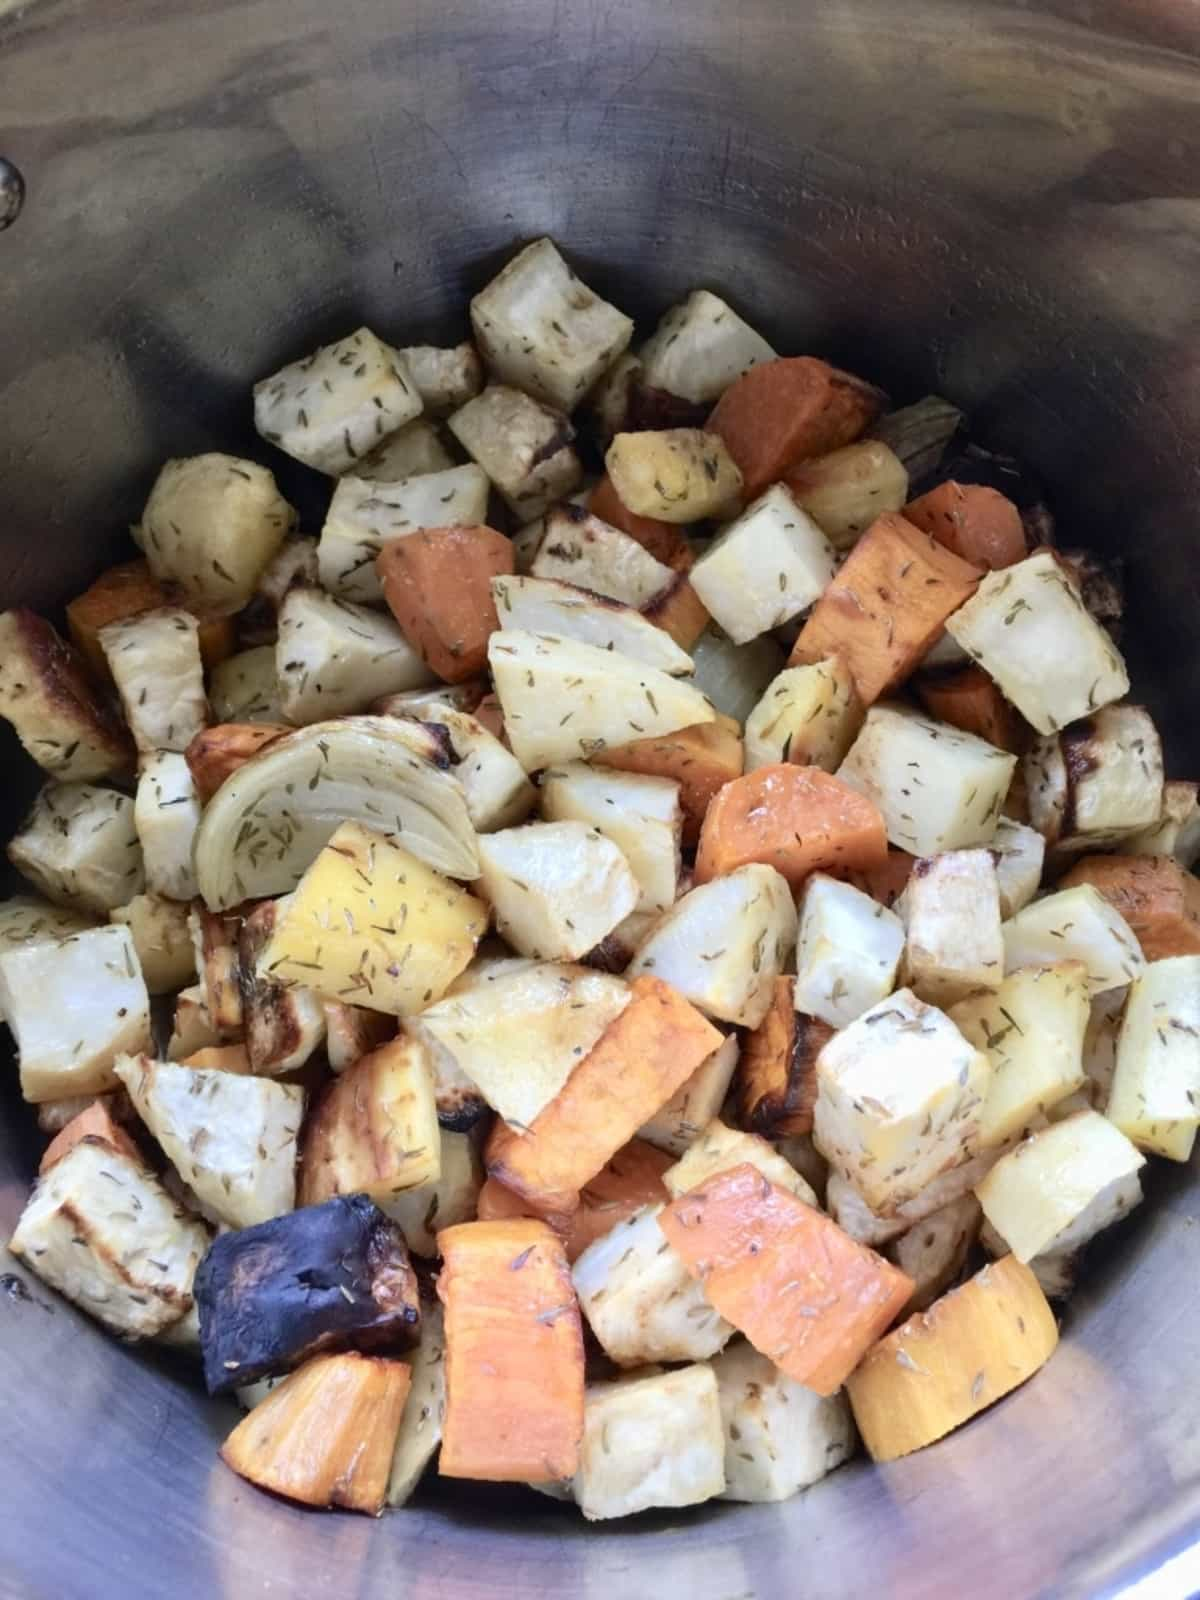 Roasted vegetable chunks in a pot.